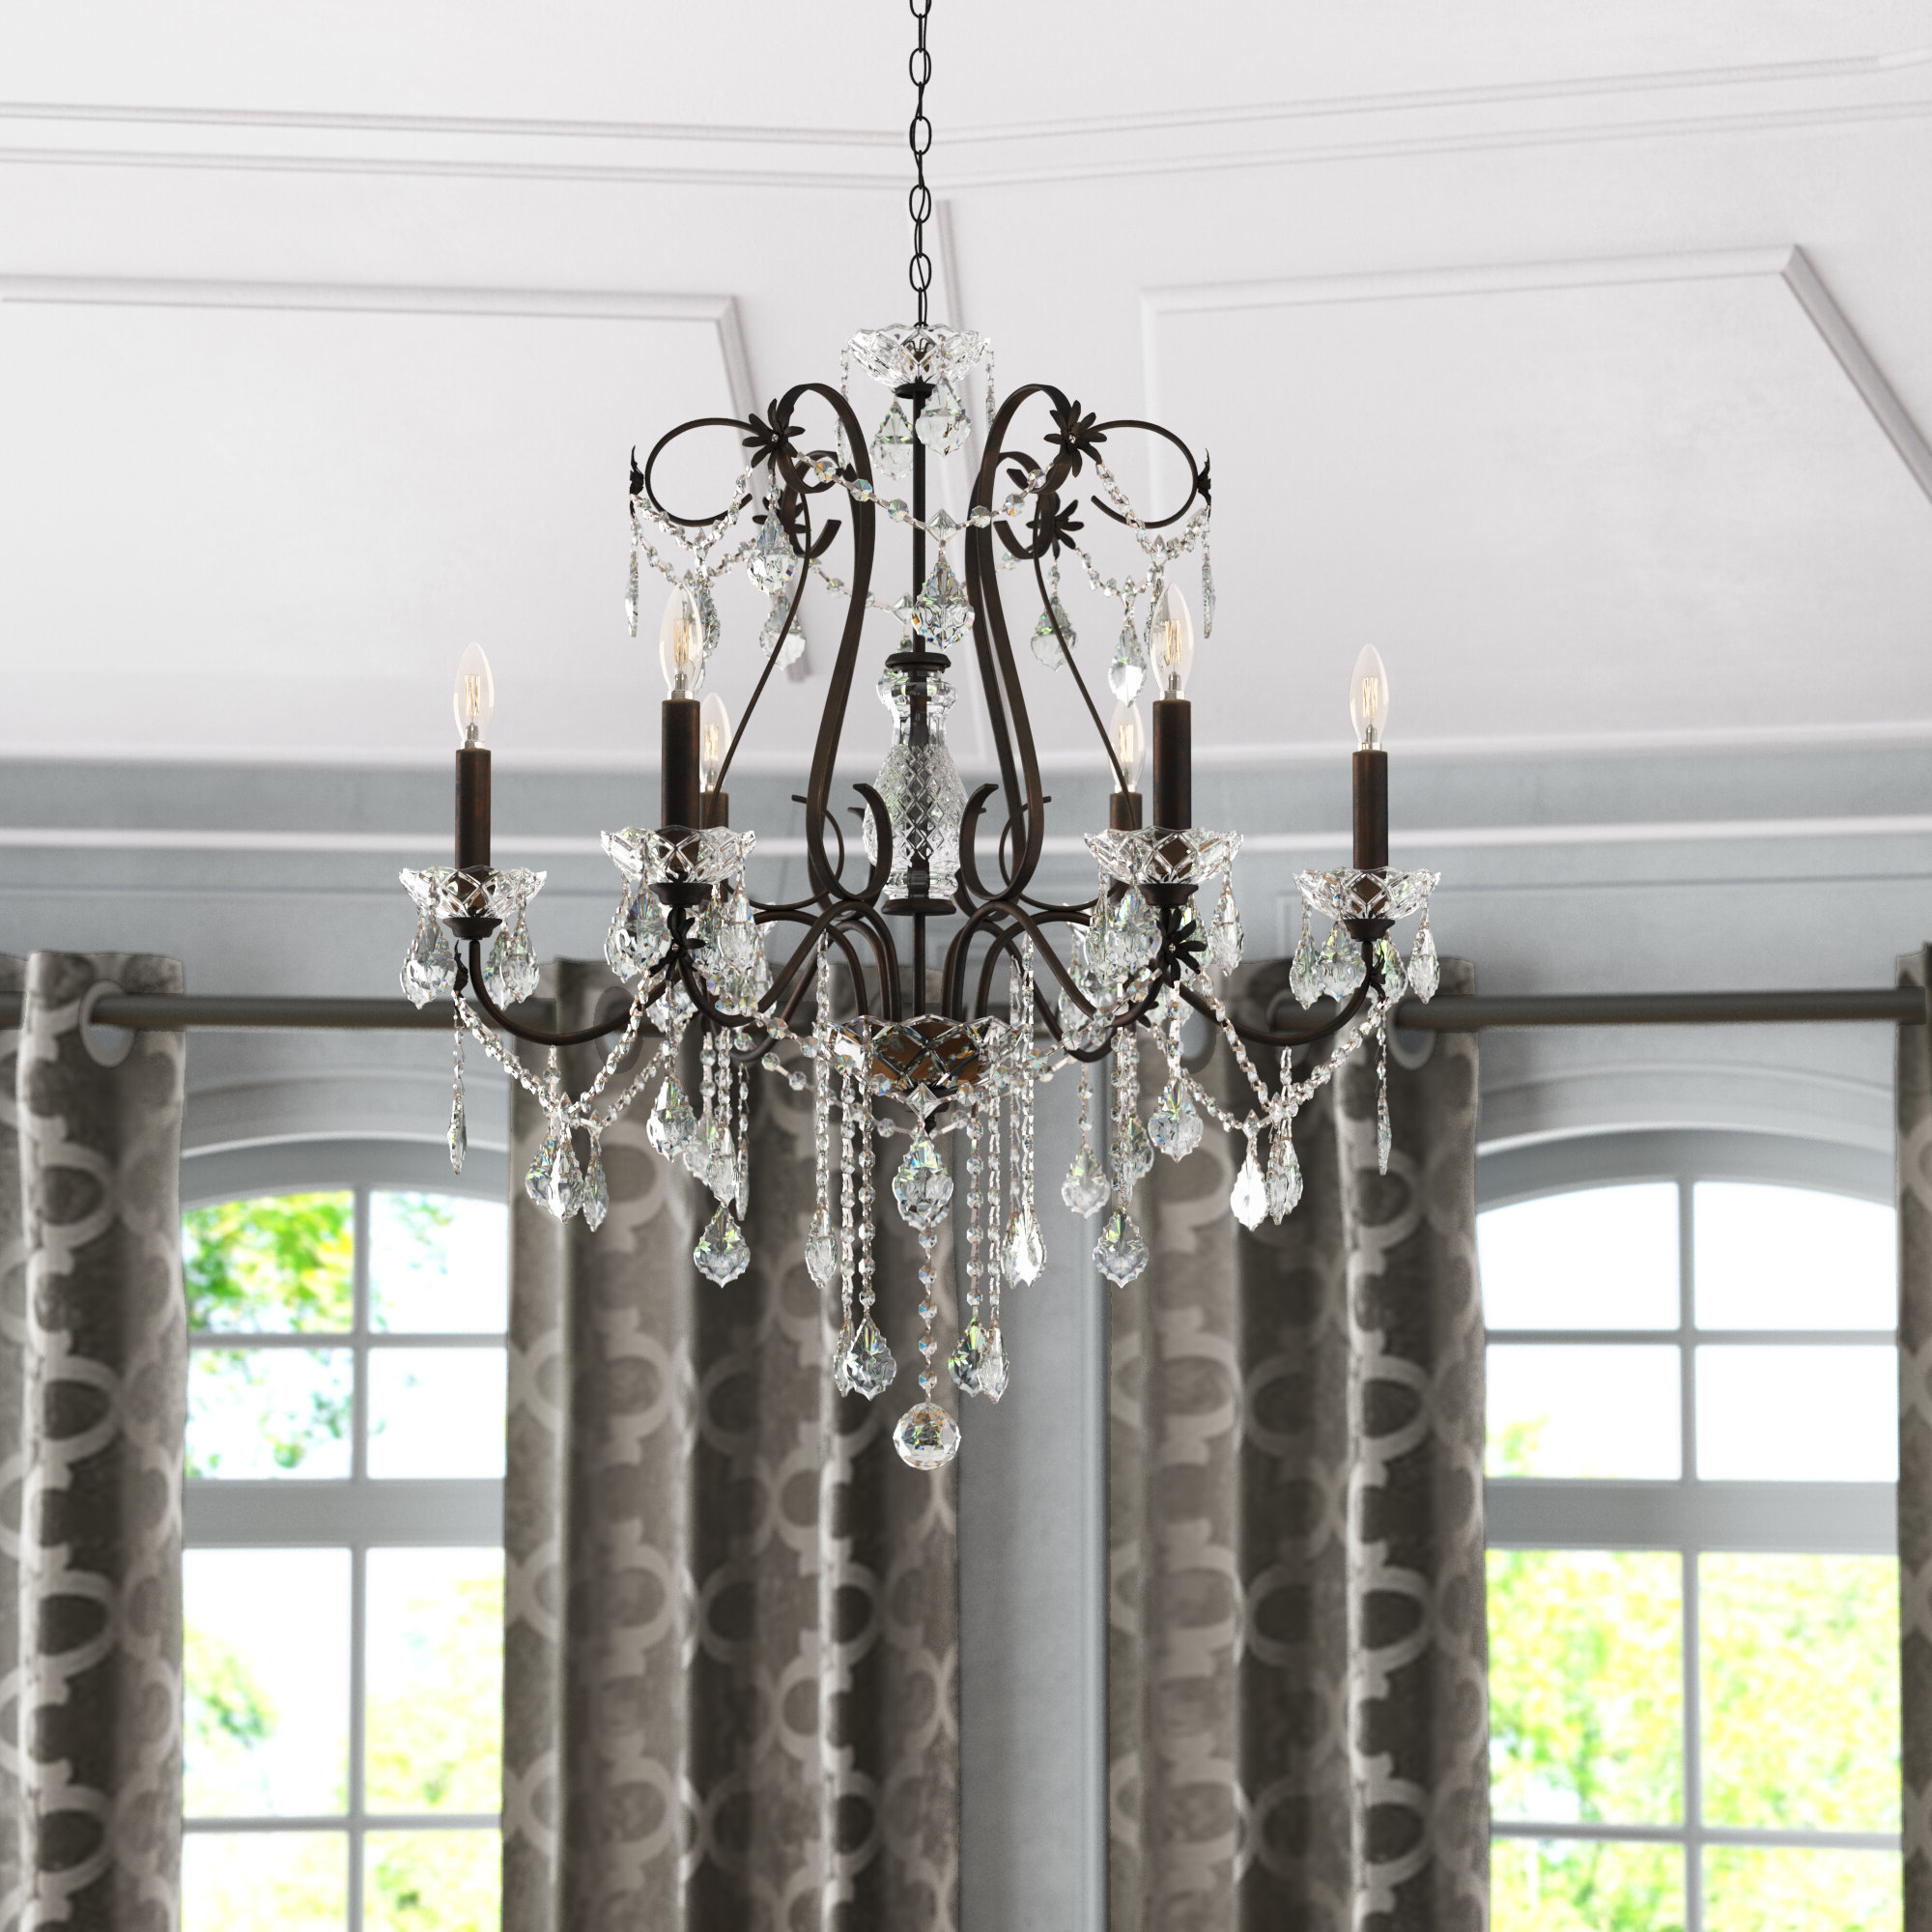 Hesse 5 Light Candle Style Chandeliers Regarding Well Known Thao 6 Light Candle Style Chandelier (Gallery 19 of 25)